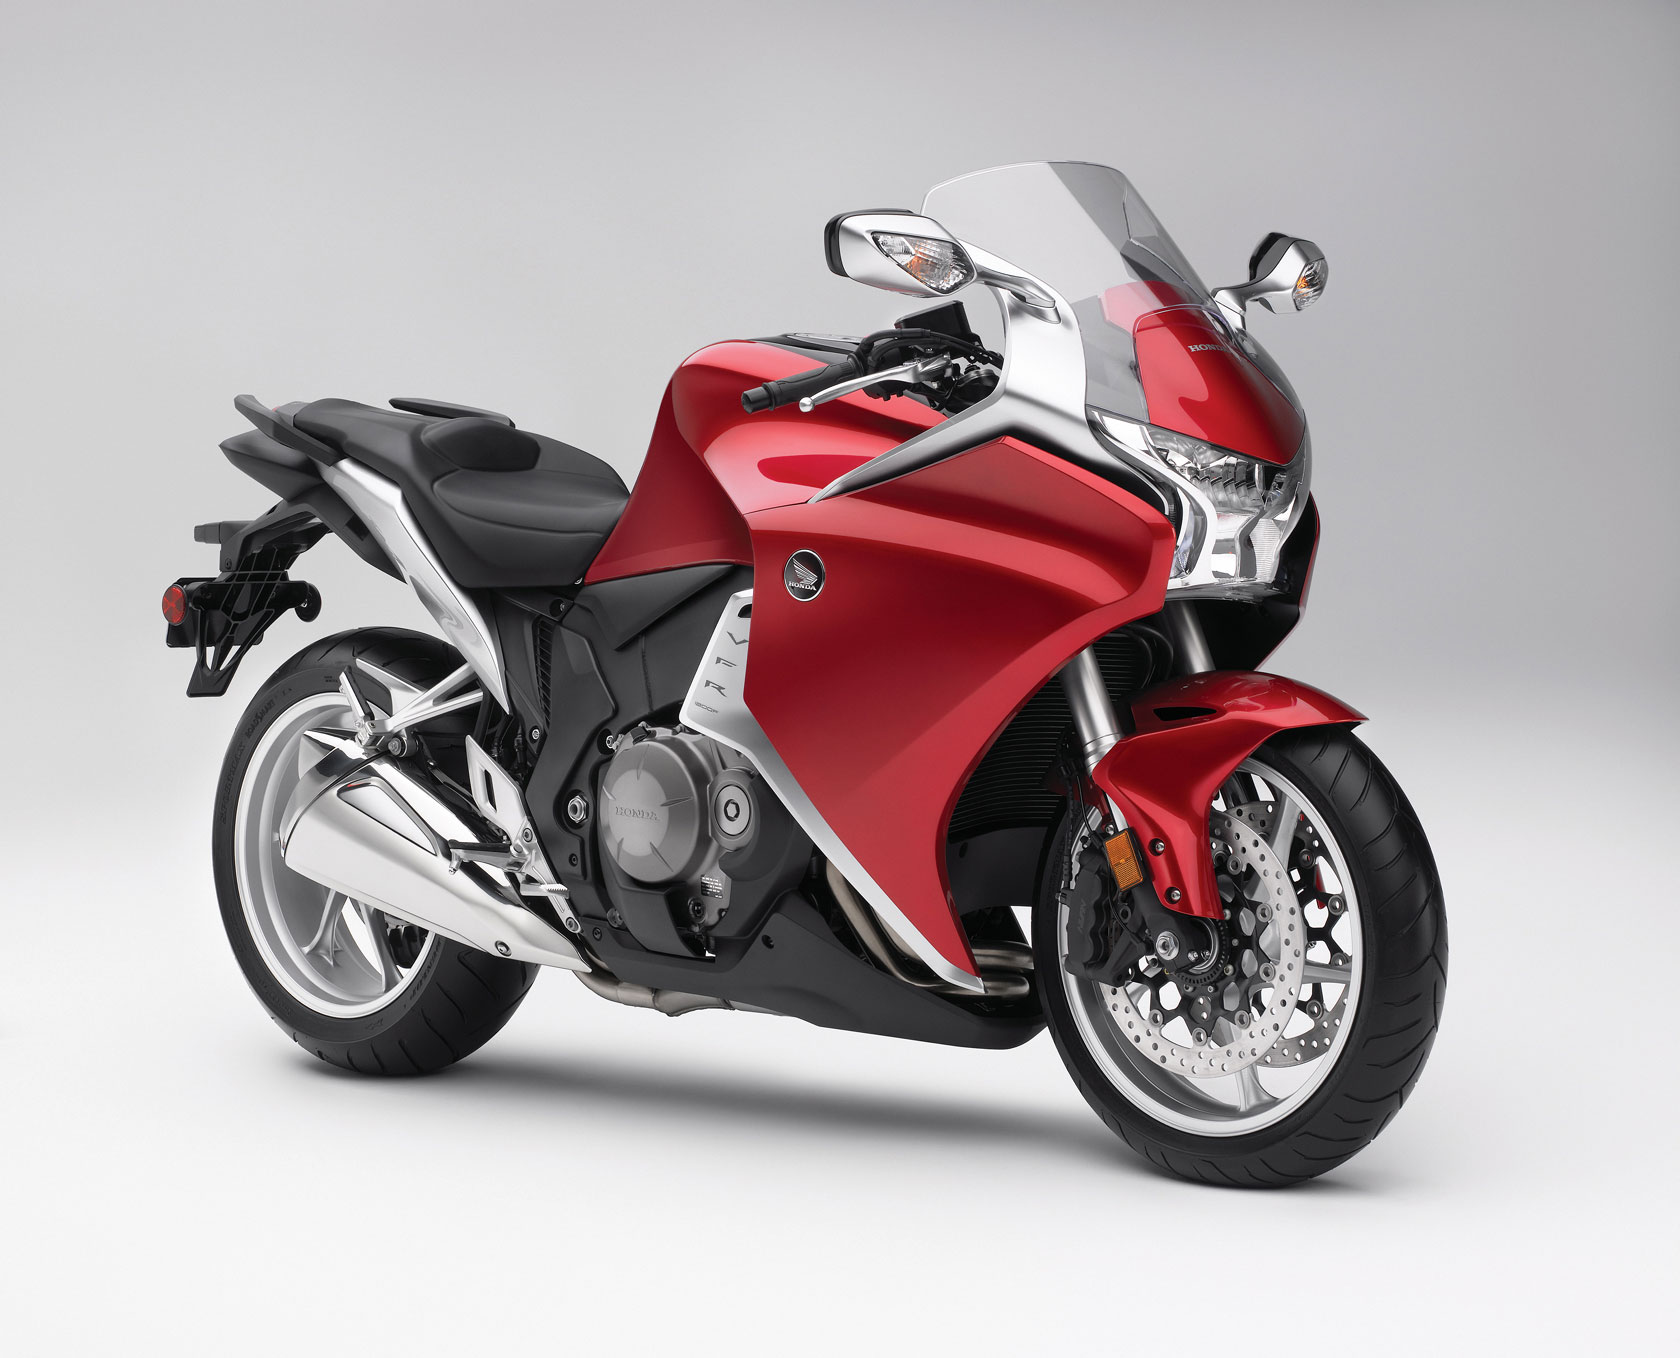 2010 Honda Interceptor VFR1200F Wallpaper